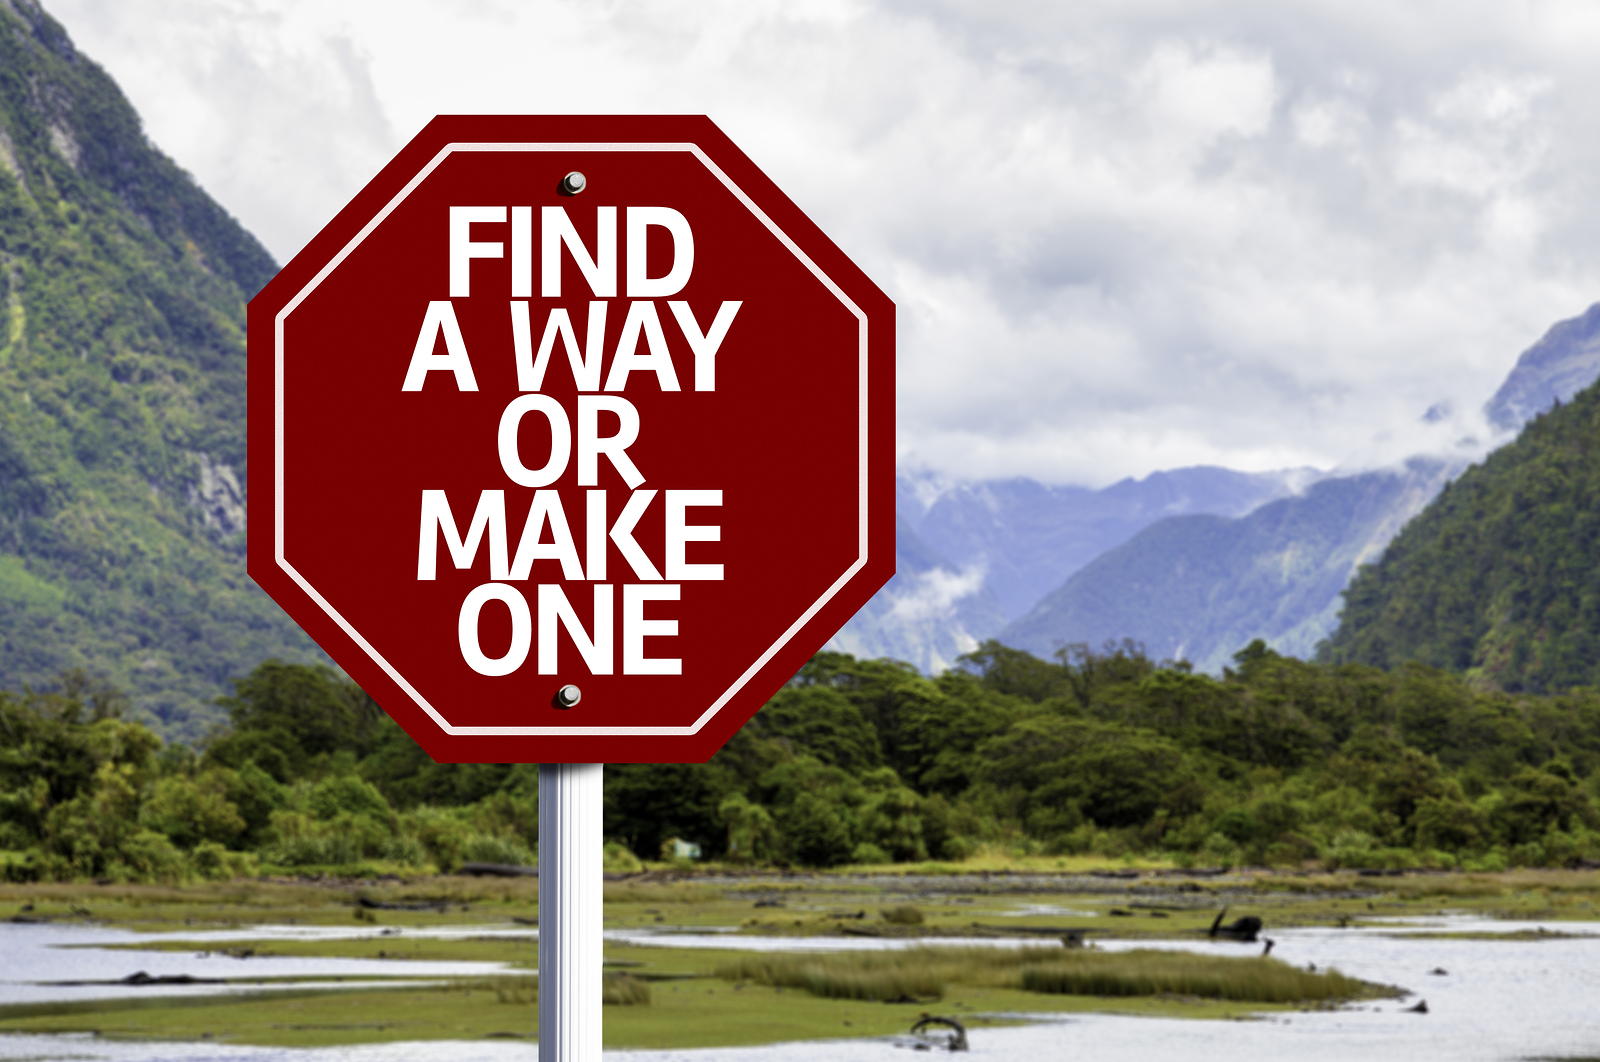 Find A Way Or Make One written on red road sign with landscape b